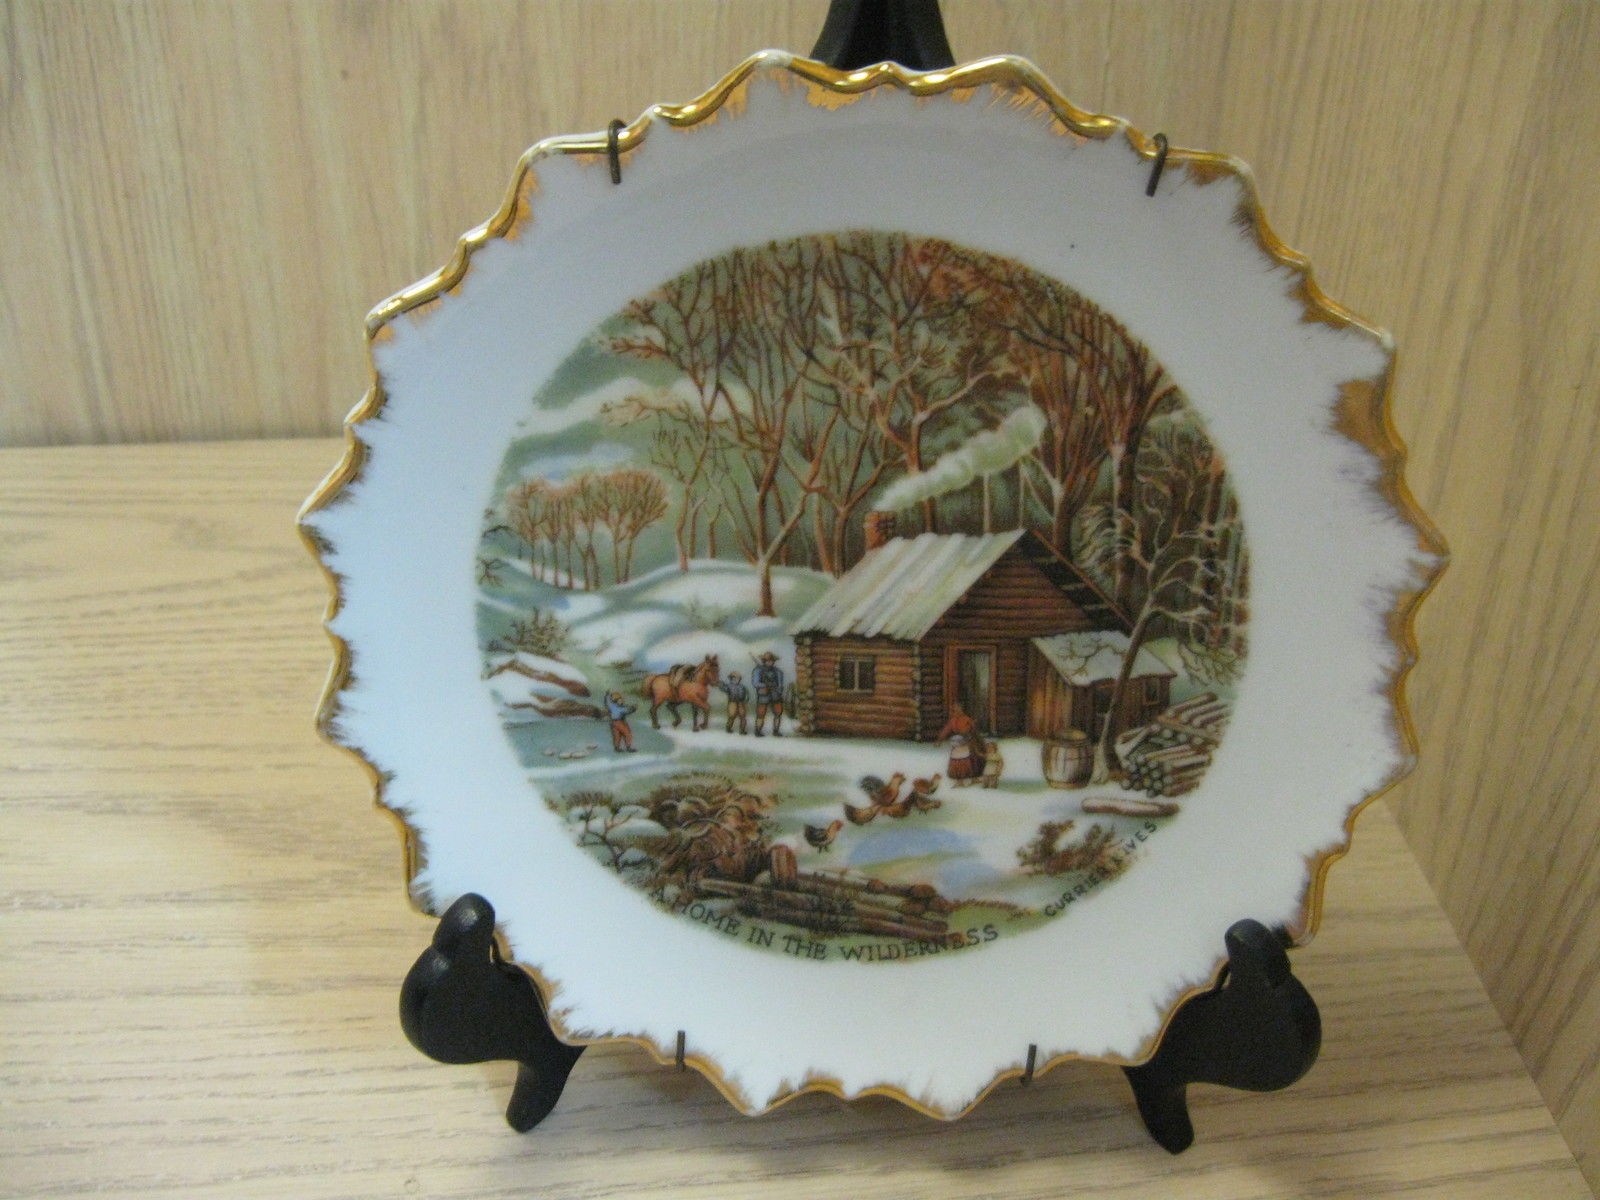 afb1ee630b22 Collector Plate Home In The Wilderness Currier   Ives Scallop Gold Rim  Plate -  9.95